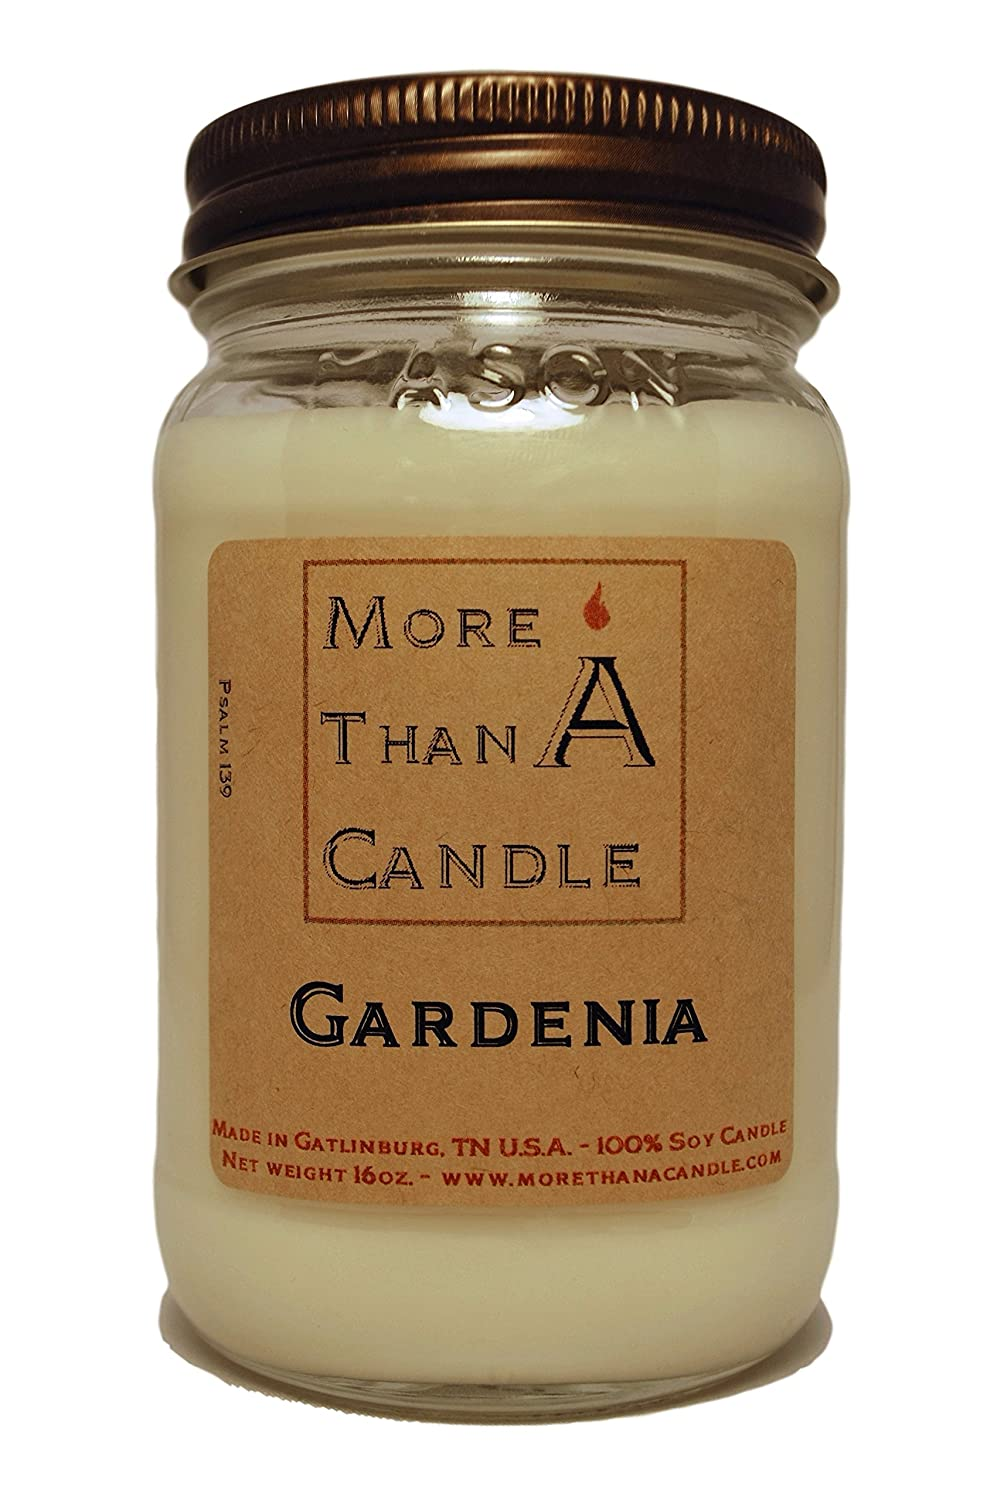 正規激安 More Than A Jar Gardenia A Candle GDA16M 16 oz Mason Jar Soy Candle, Gardenia B079QDBQ1B, ユキポート:857d1525 --- a0267596.xsph.ru